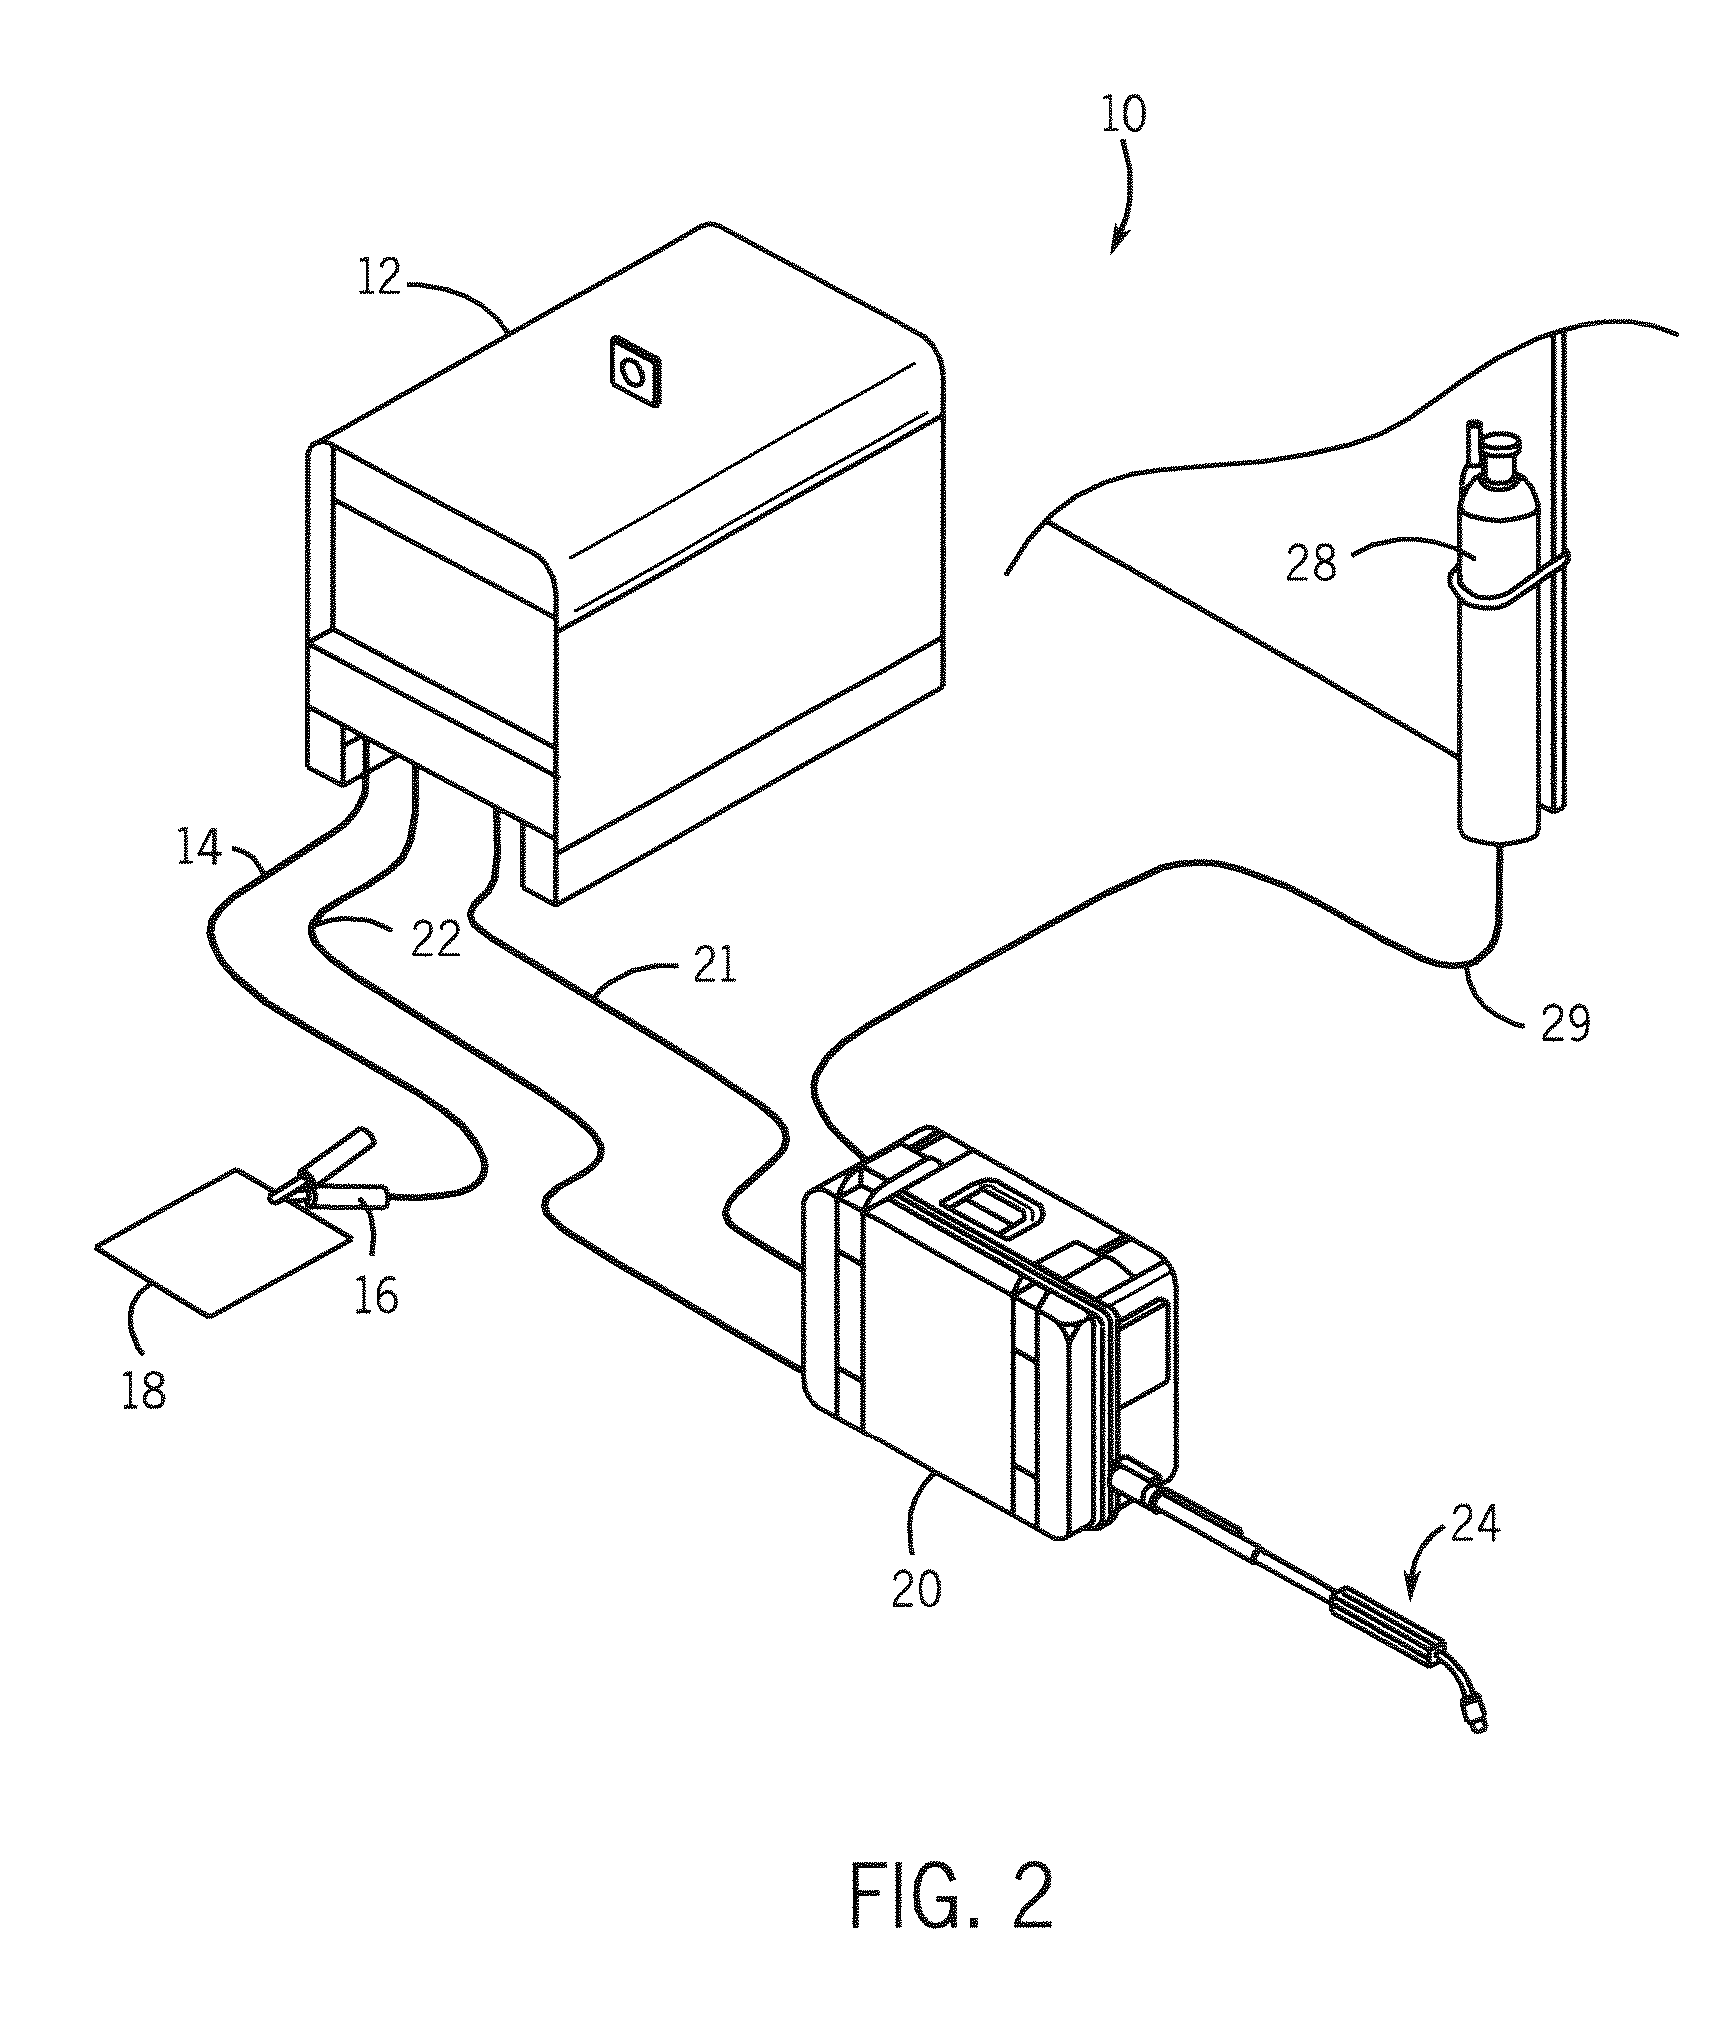 patent us7049545 - mig welding machine having 115v inverter